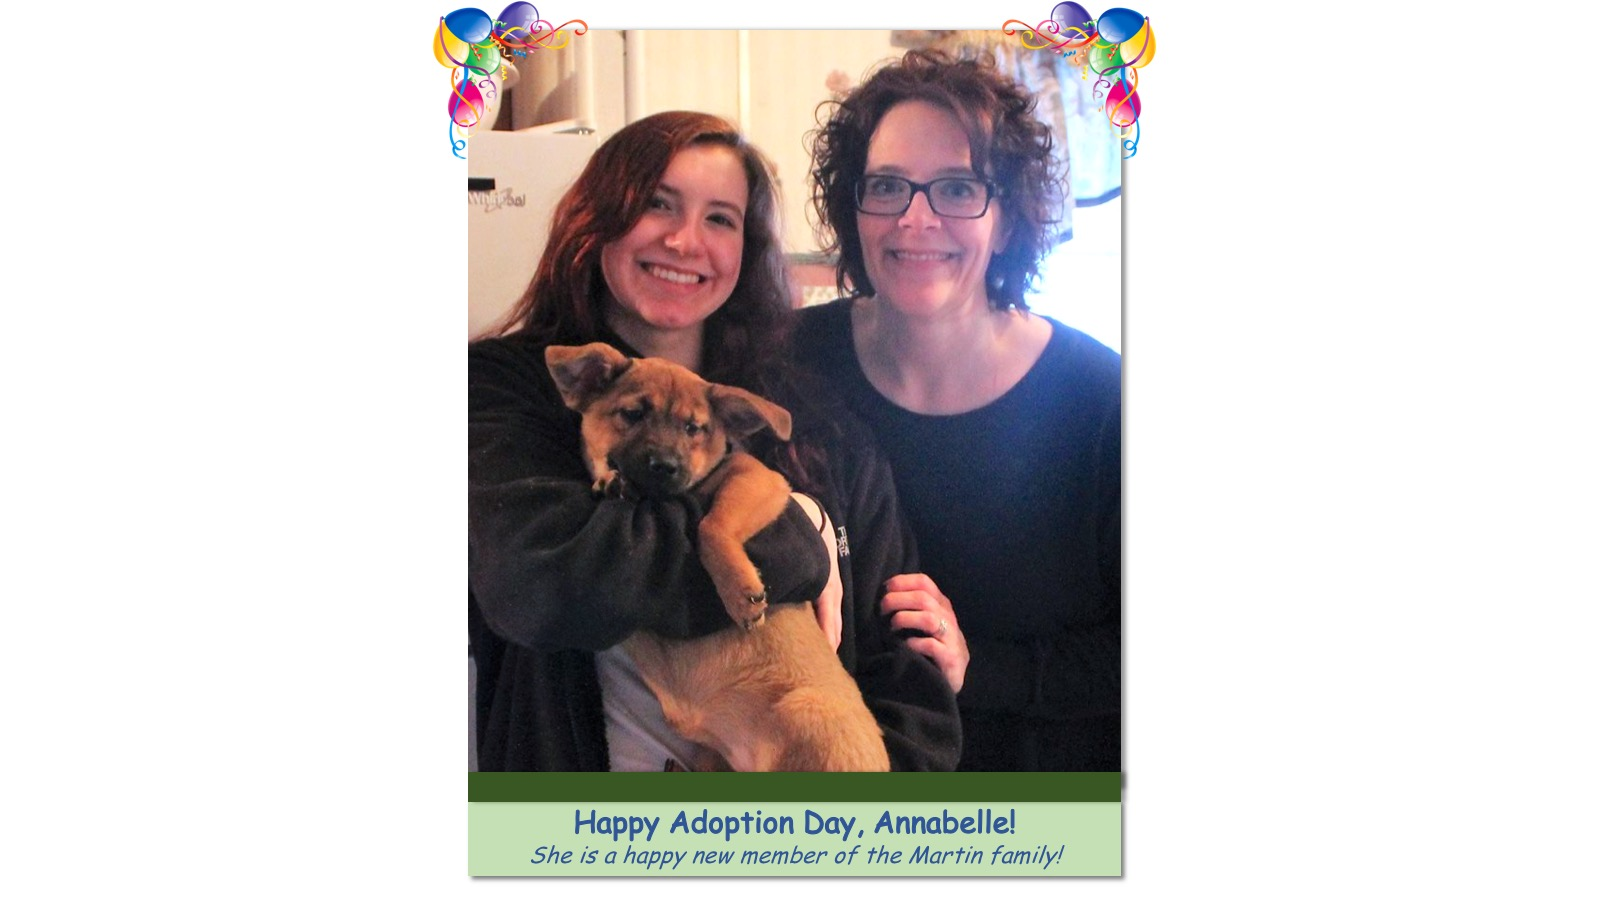 Annabelle_Adoption_Photo53198.jpg